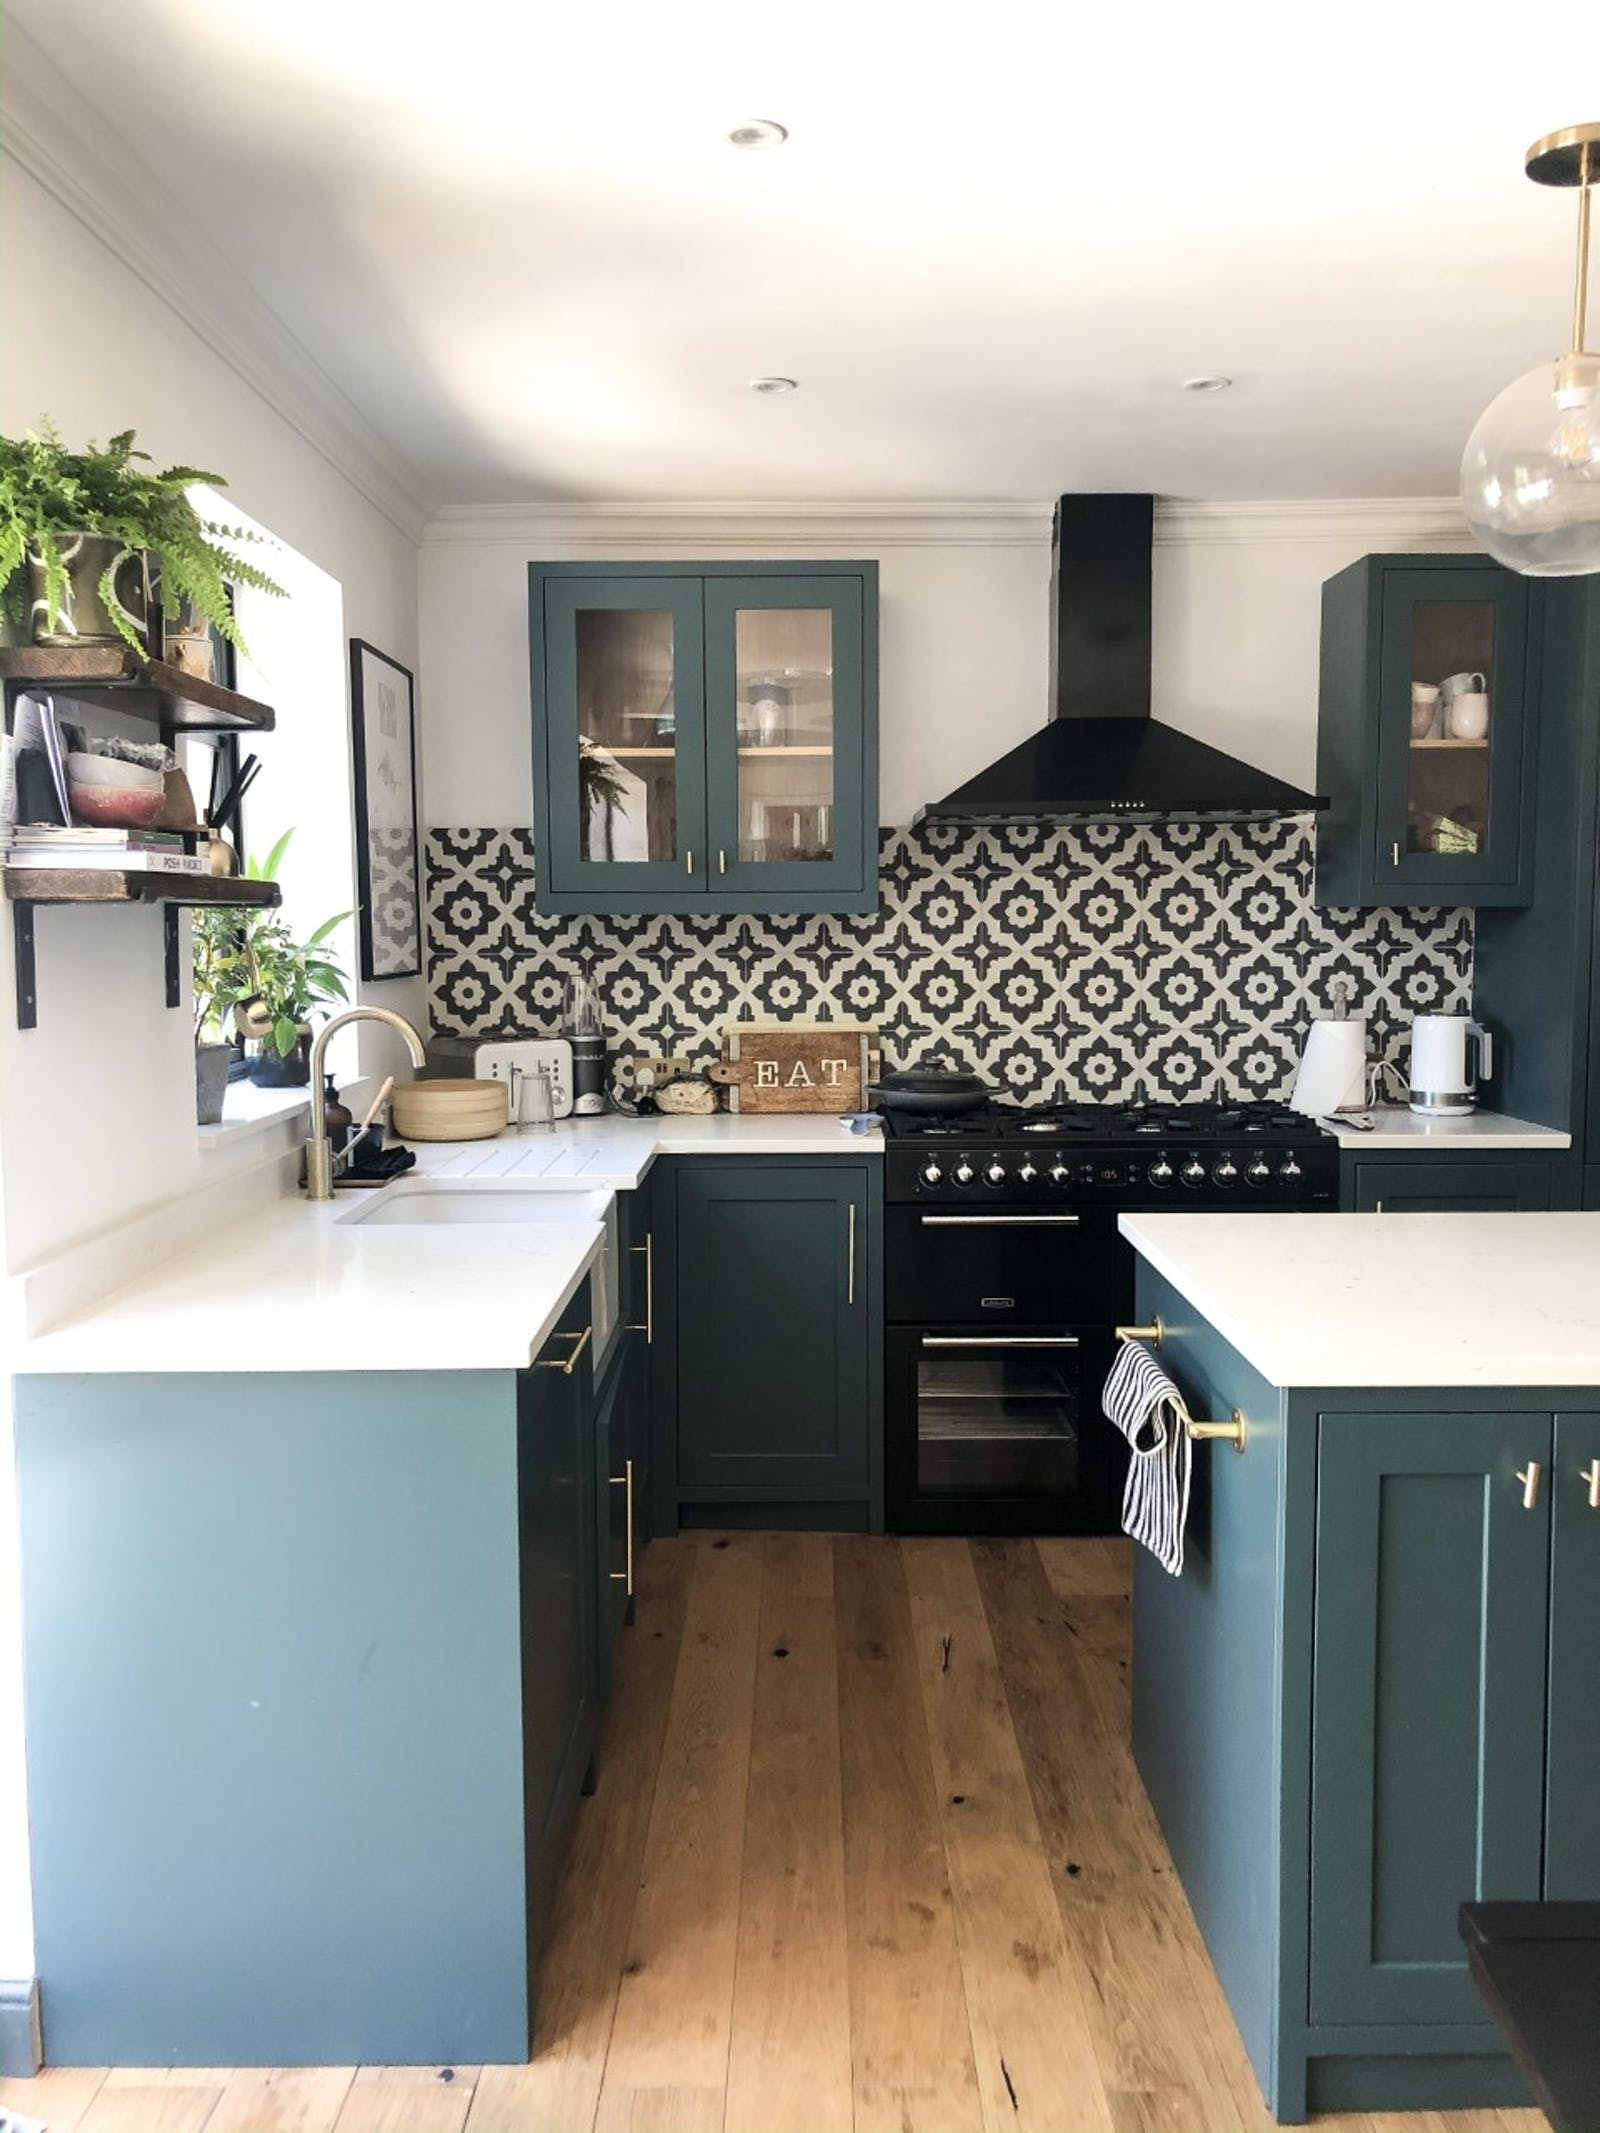 Kitchen with cabinets painted in teal and patterned black and white tiles behind the stove